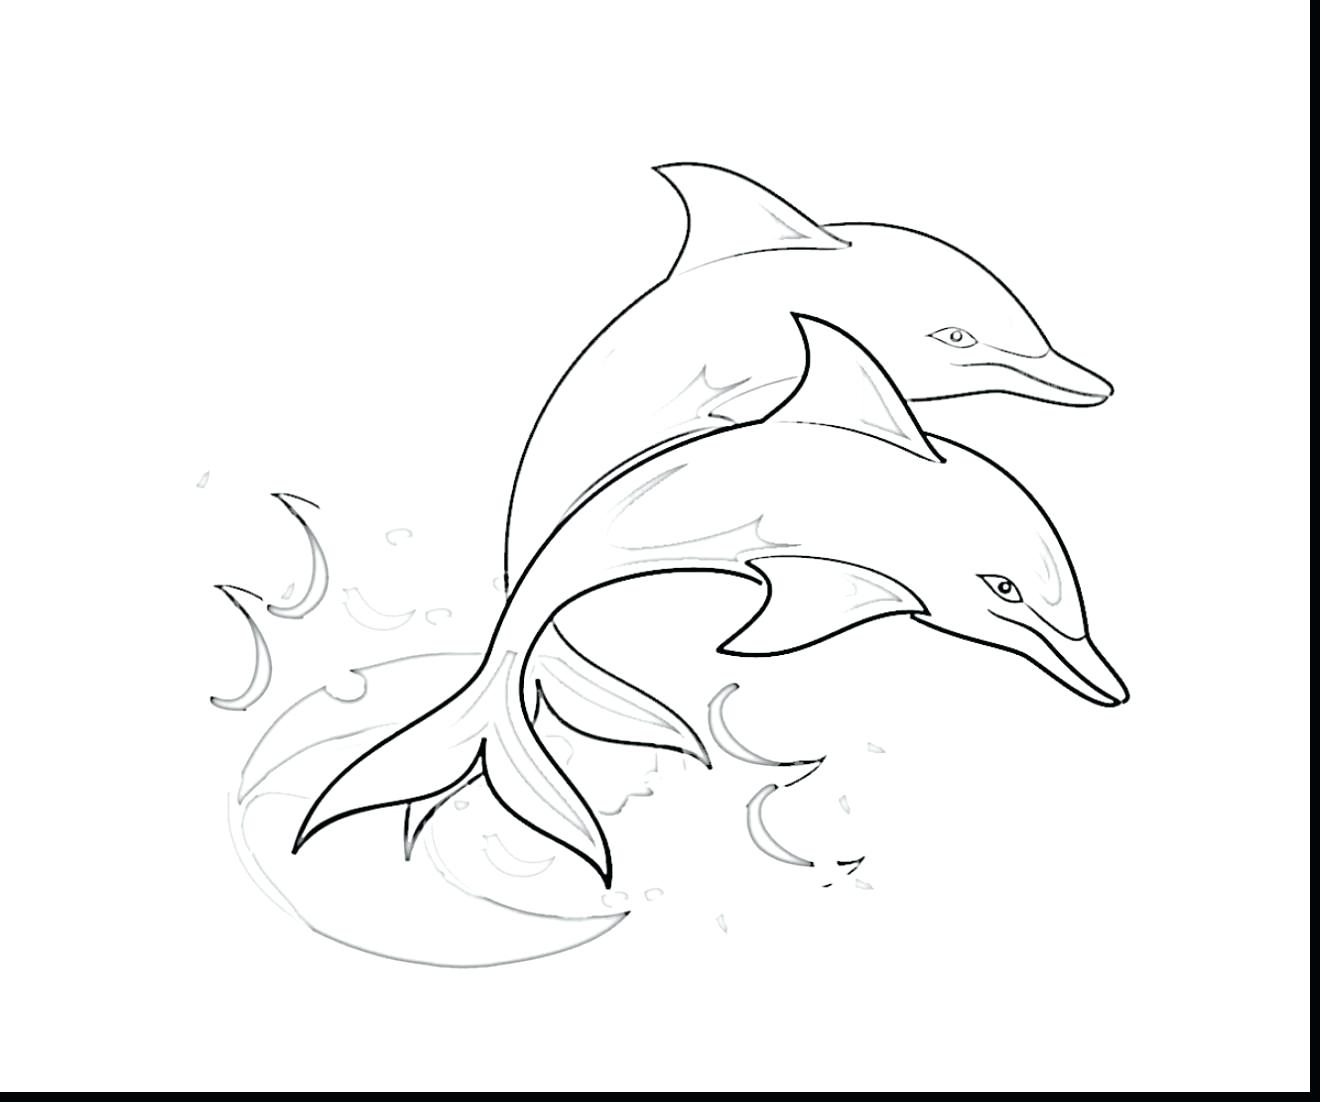 Cute Dolphin Drawing at GetDrawings.com | Free for personal use Cute ...